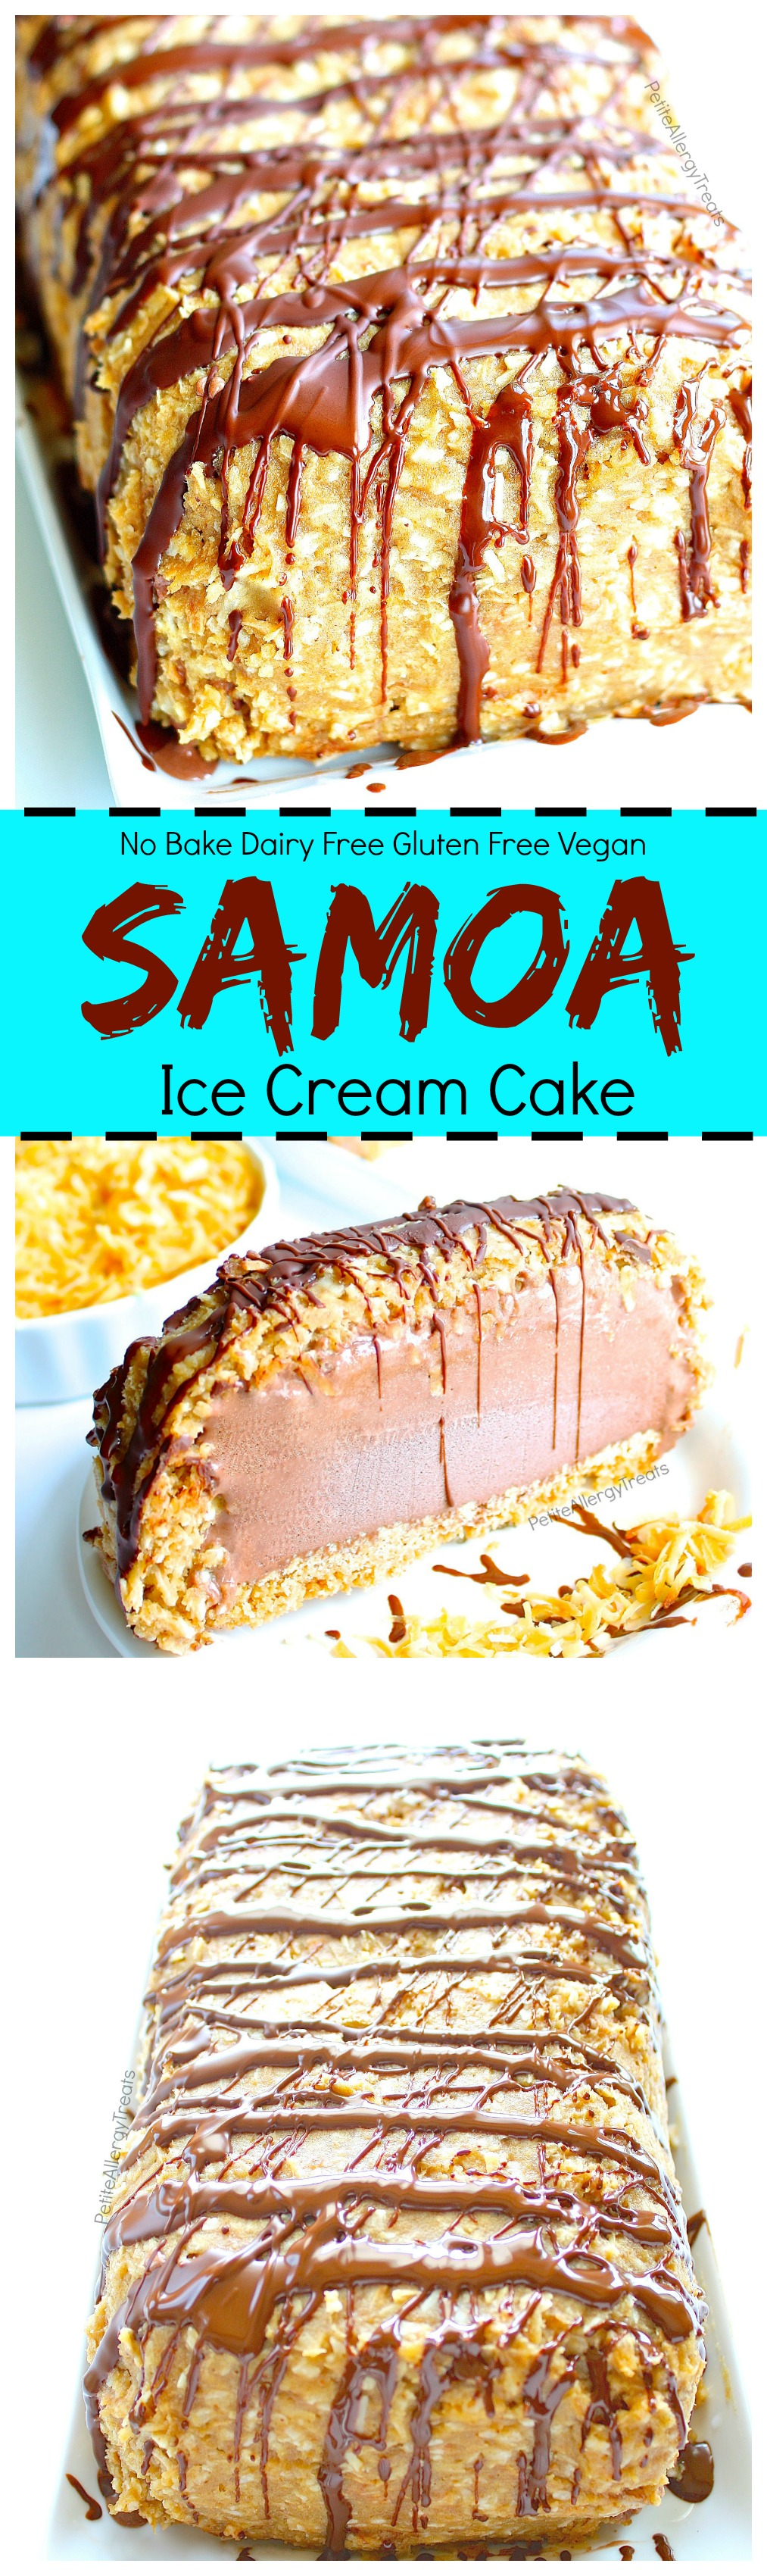 Dairy Free Samoa Ice Cream Cake Recipe (Gluten Free Vegan )- Crunchy toasted coconut, sweet caramel with cookie crumb bottom make this dairy free chocolate ice cream cake irresistible. Food Allergy friendly.